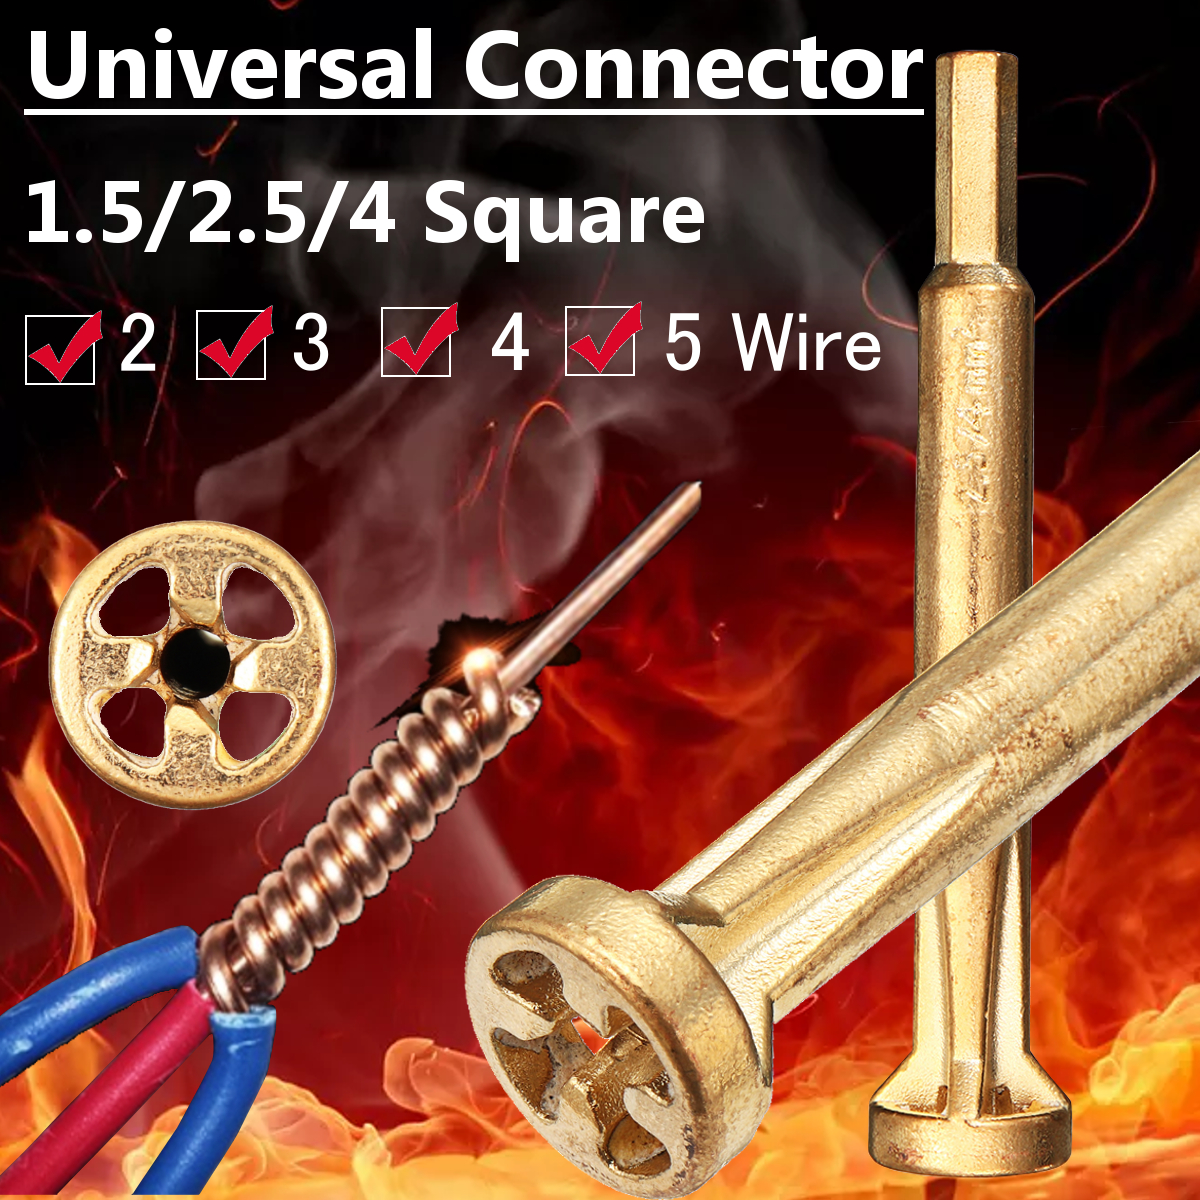 Universal Wire Connector Electrical Cable Quick Connector Parallel Electrical Wire Electrical Drill Bit Cable Stripper Connector 1.5-2.5-4 Square